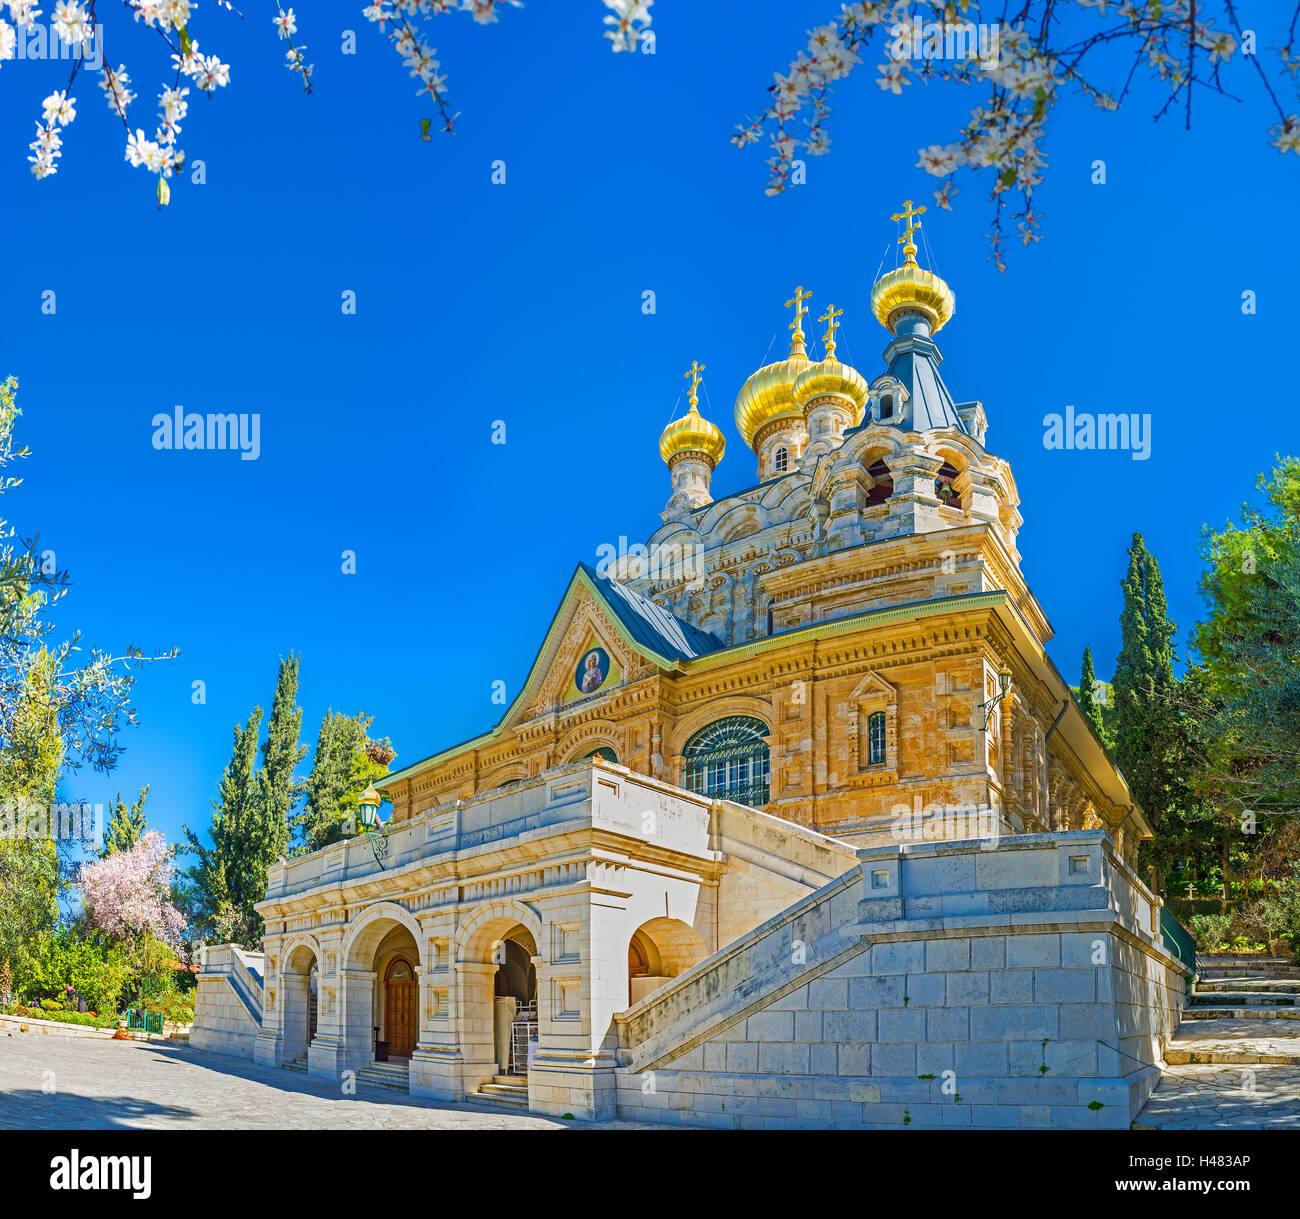 The facade of the  Russian Orthodox Church of Mary Magdalene, located on the Mount of Olives, Jerusalem, Israel. Stock Photo